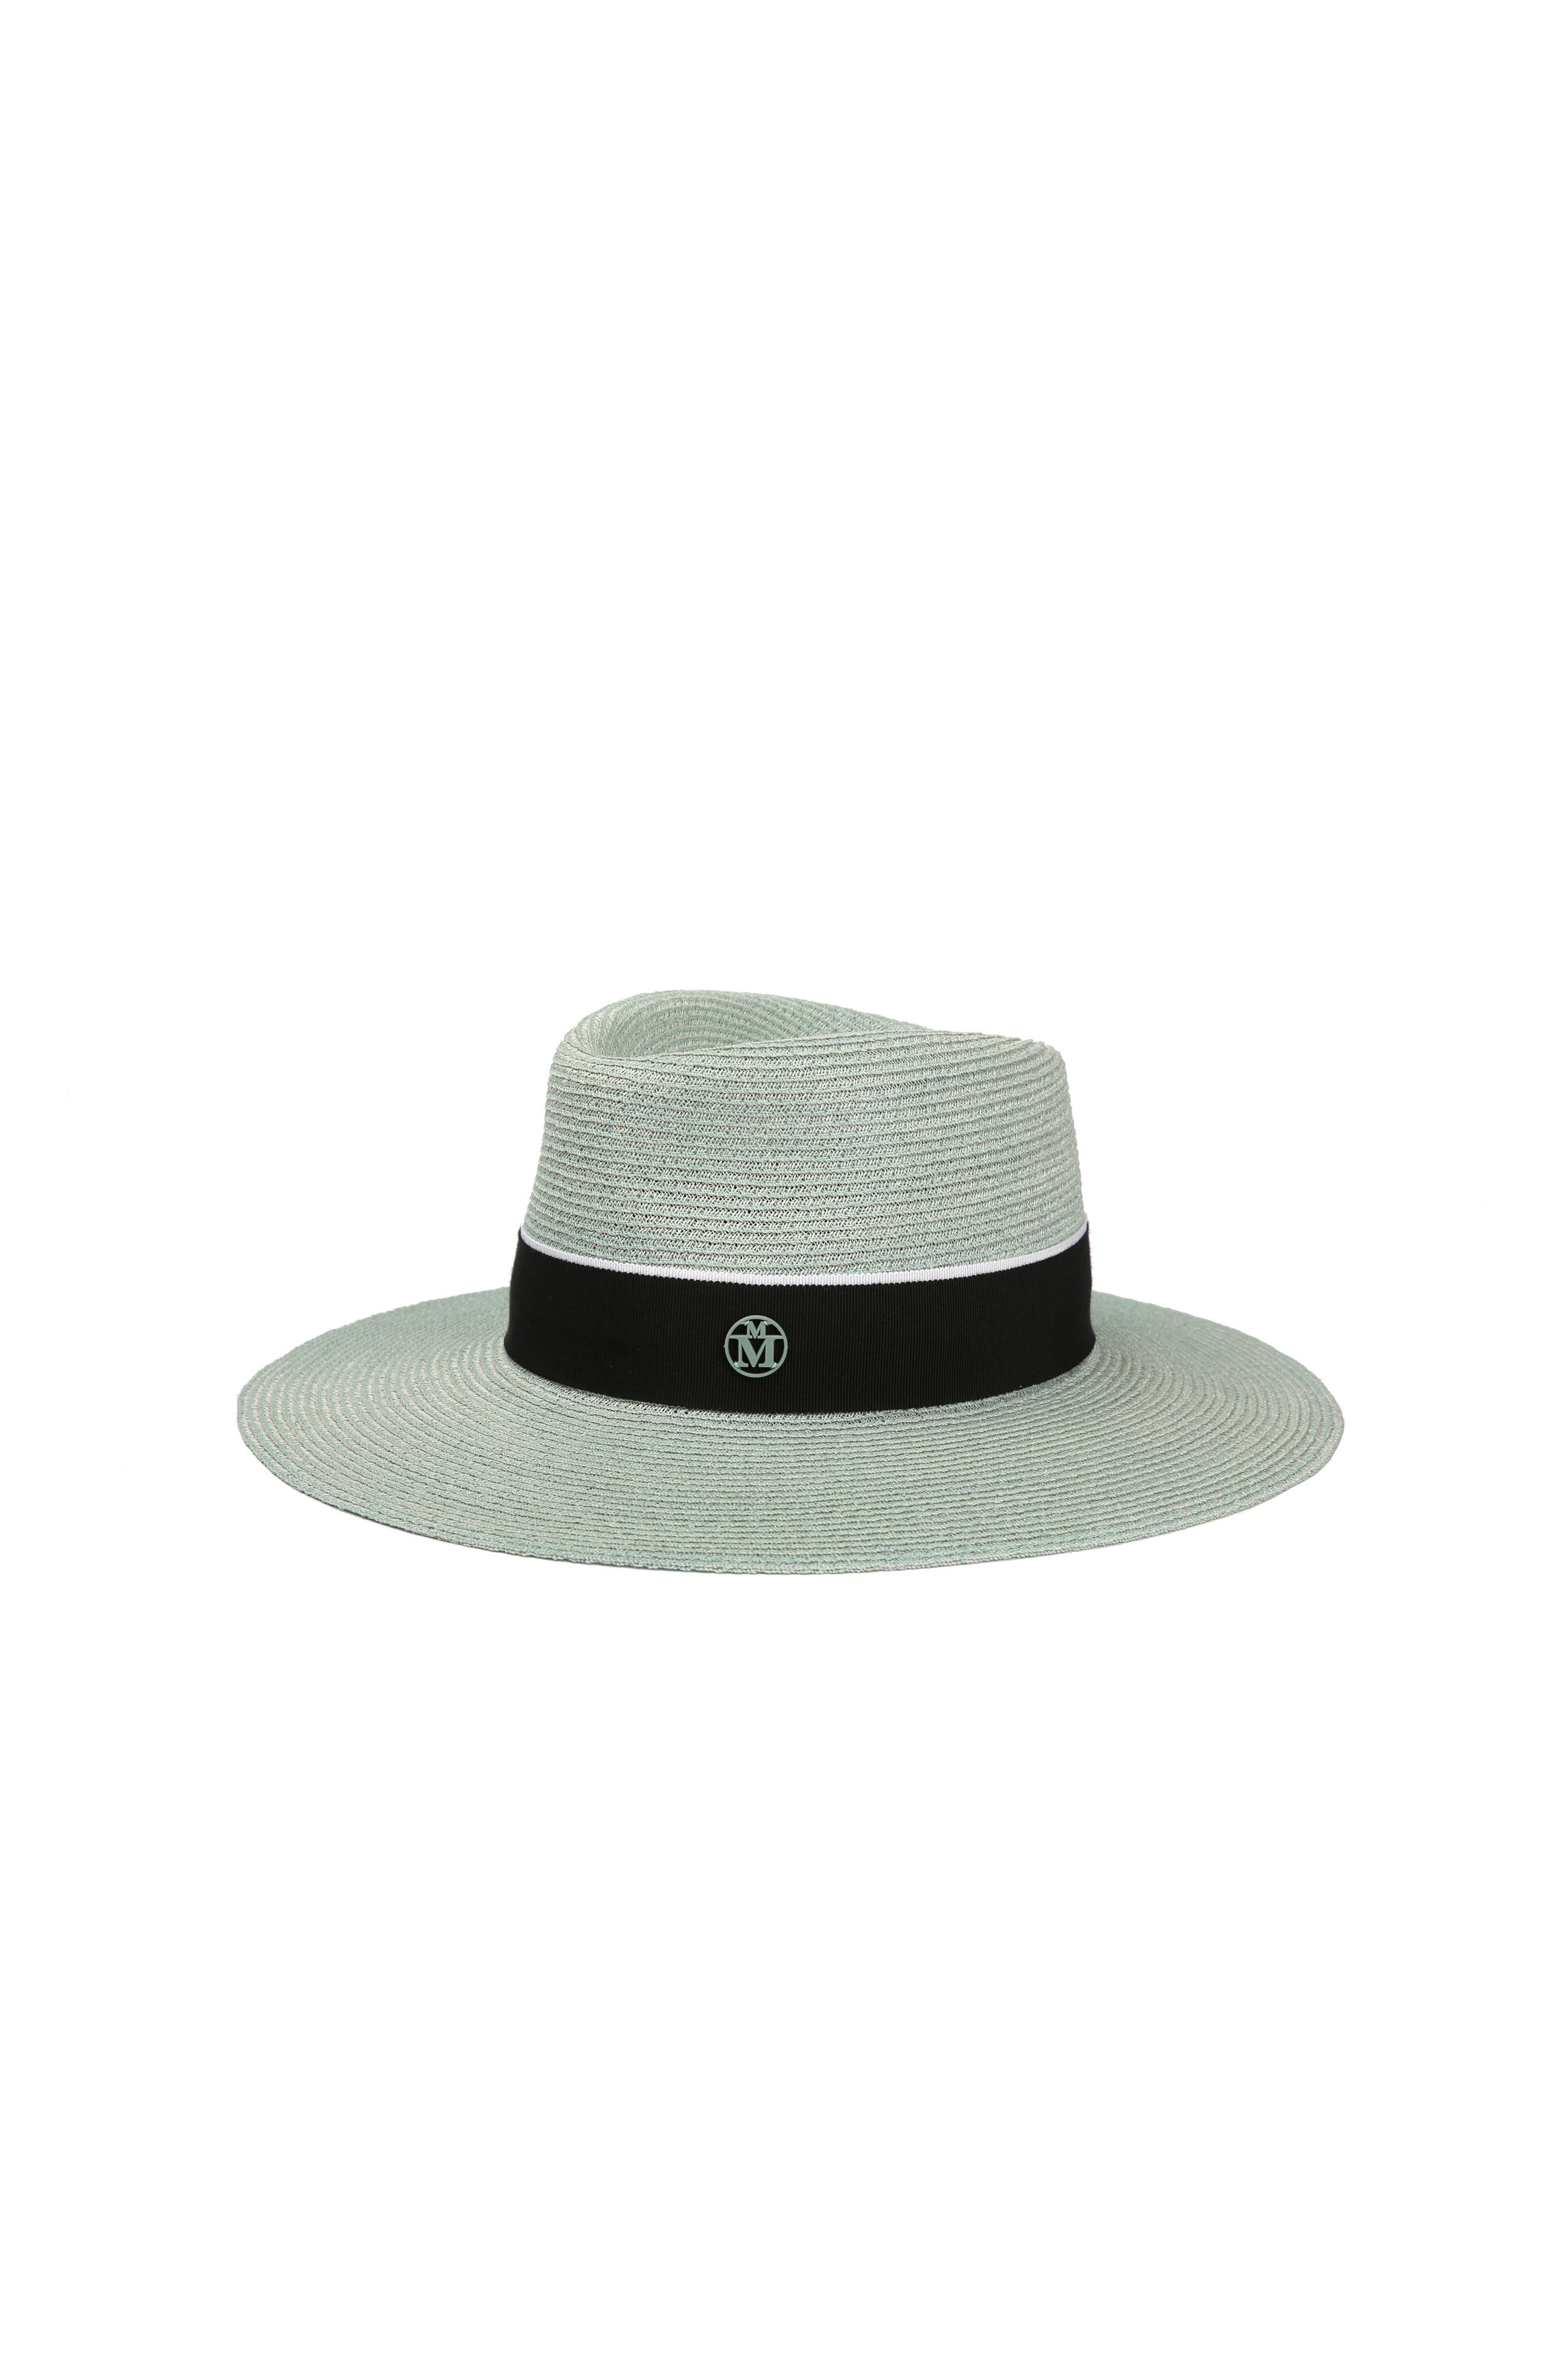 Charles Straw Hat,                         Main,                         color, Mint